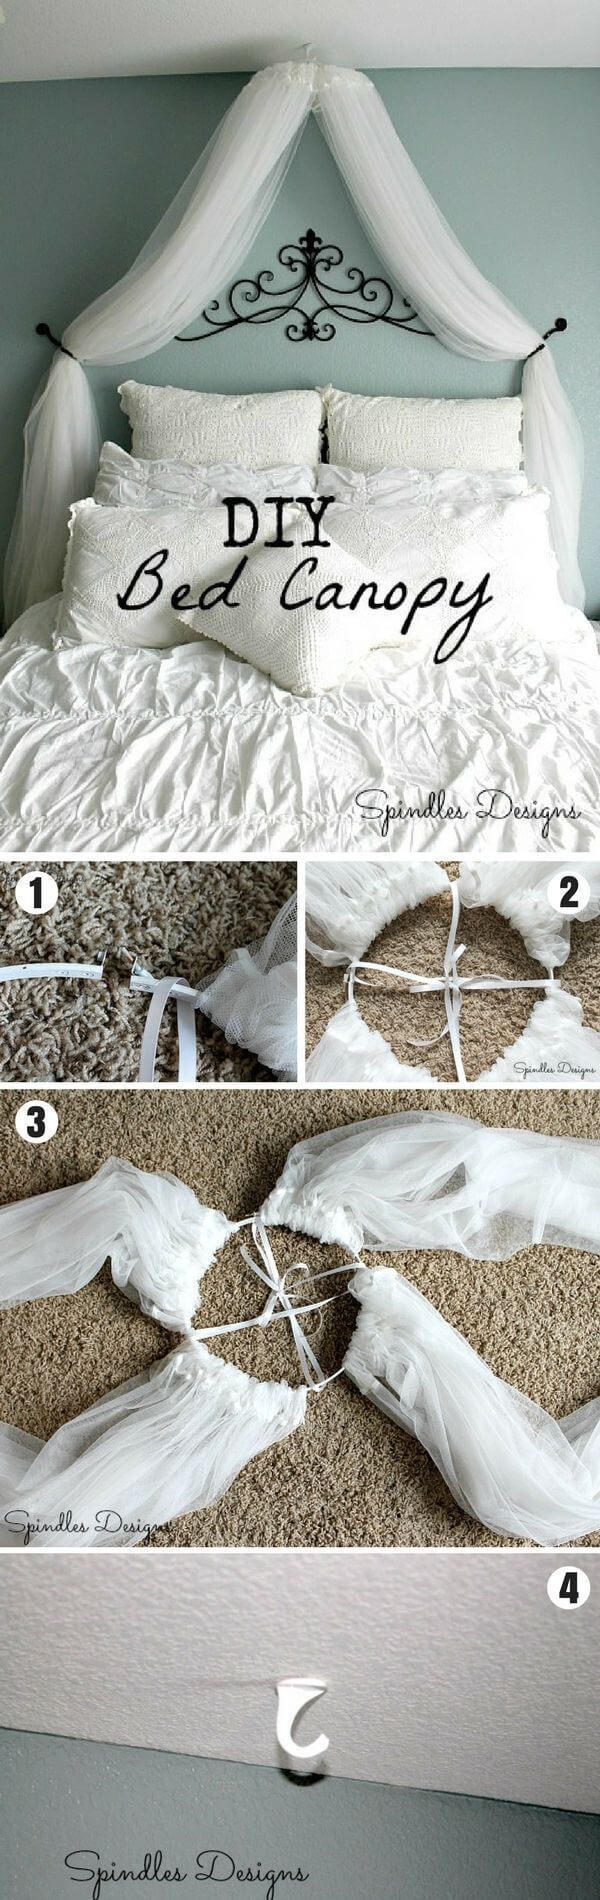 Inexpensive and Dreamy DIY Bed Canopy Ev Aksesuarları